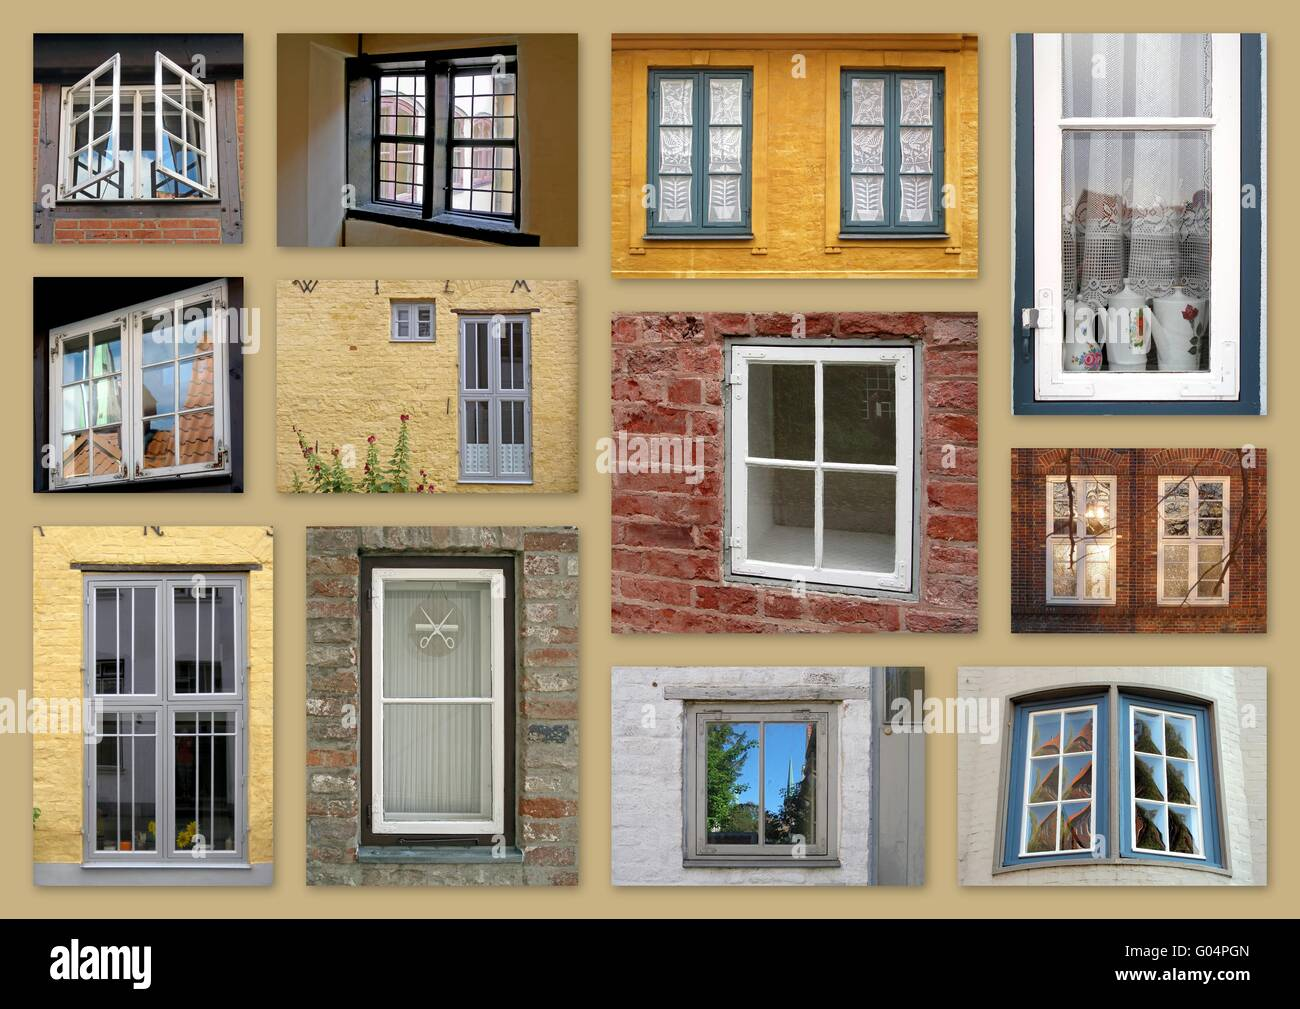 doppelfenster stockfotos doppelfenster bilder alamy. Black Bedroom Furniture Sets. Home Design Ideas